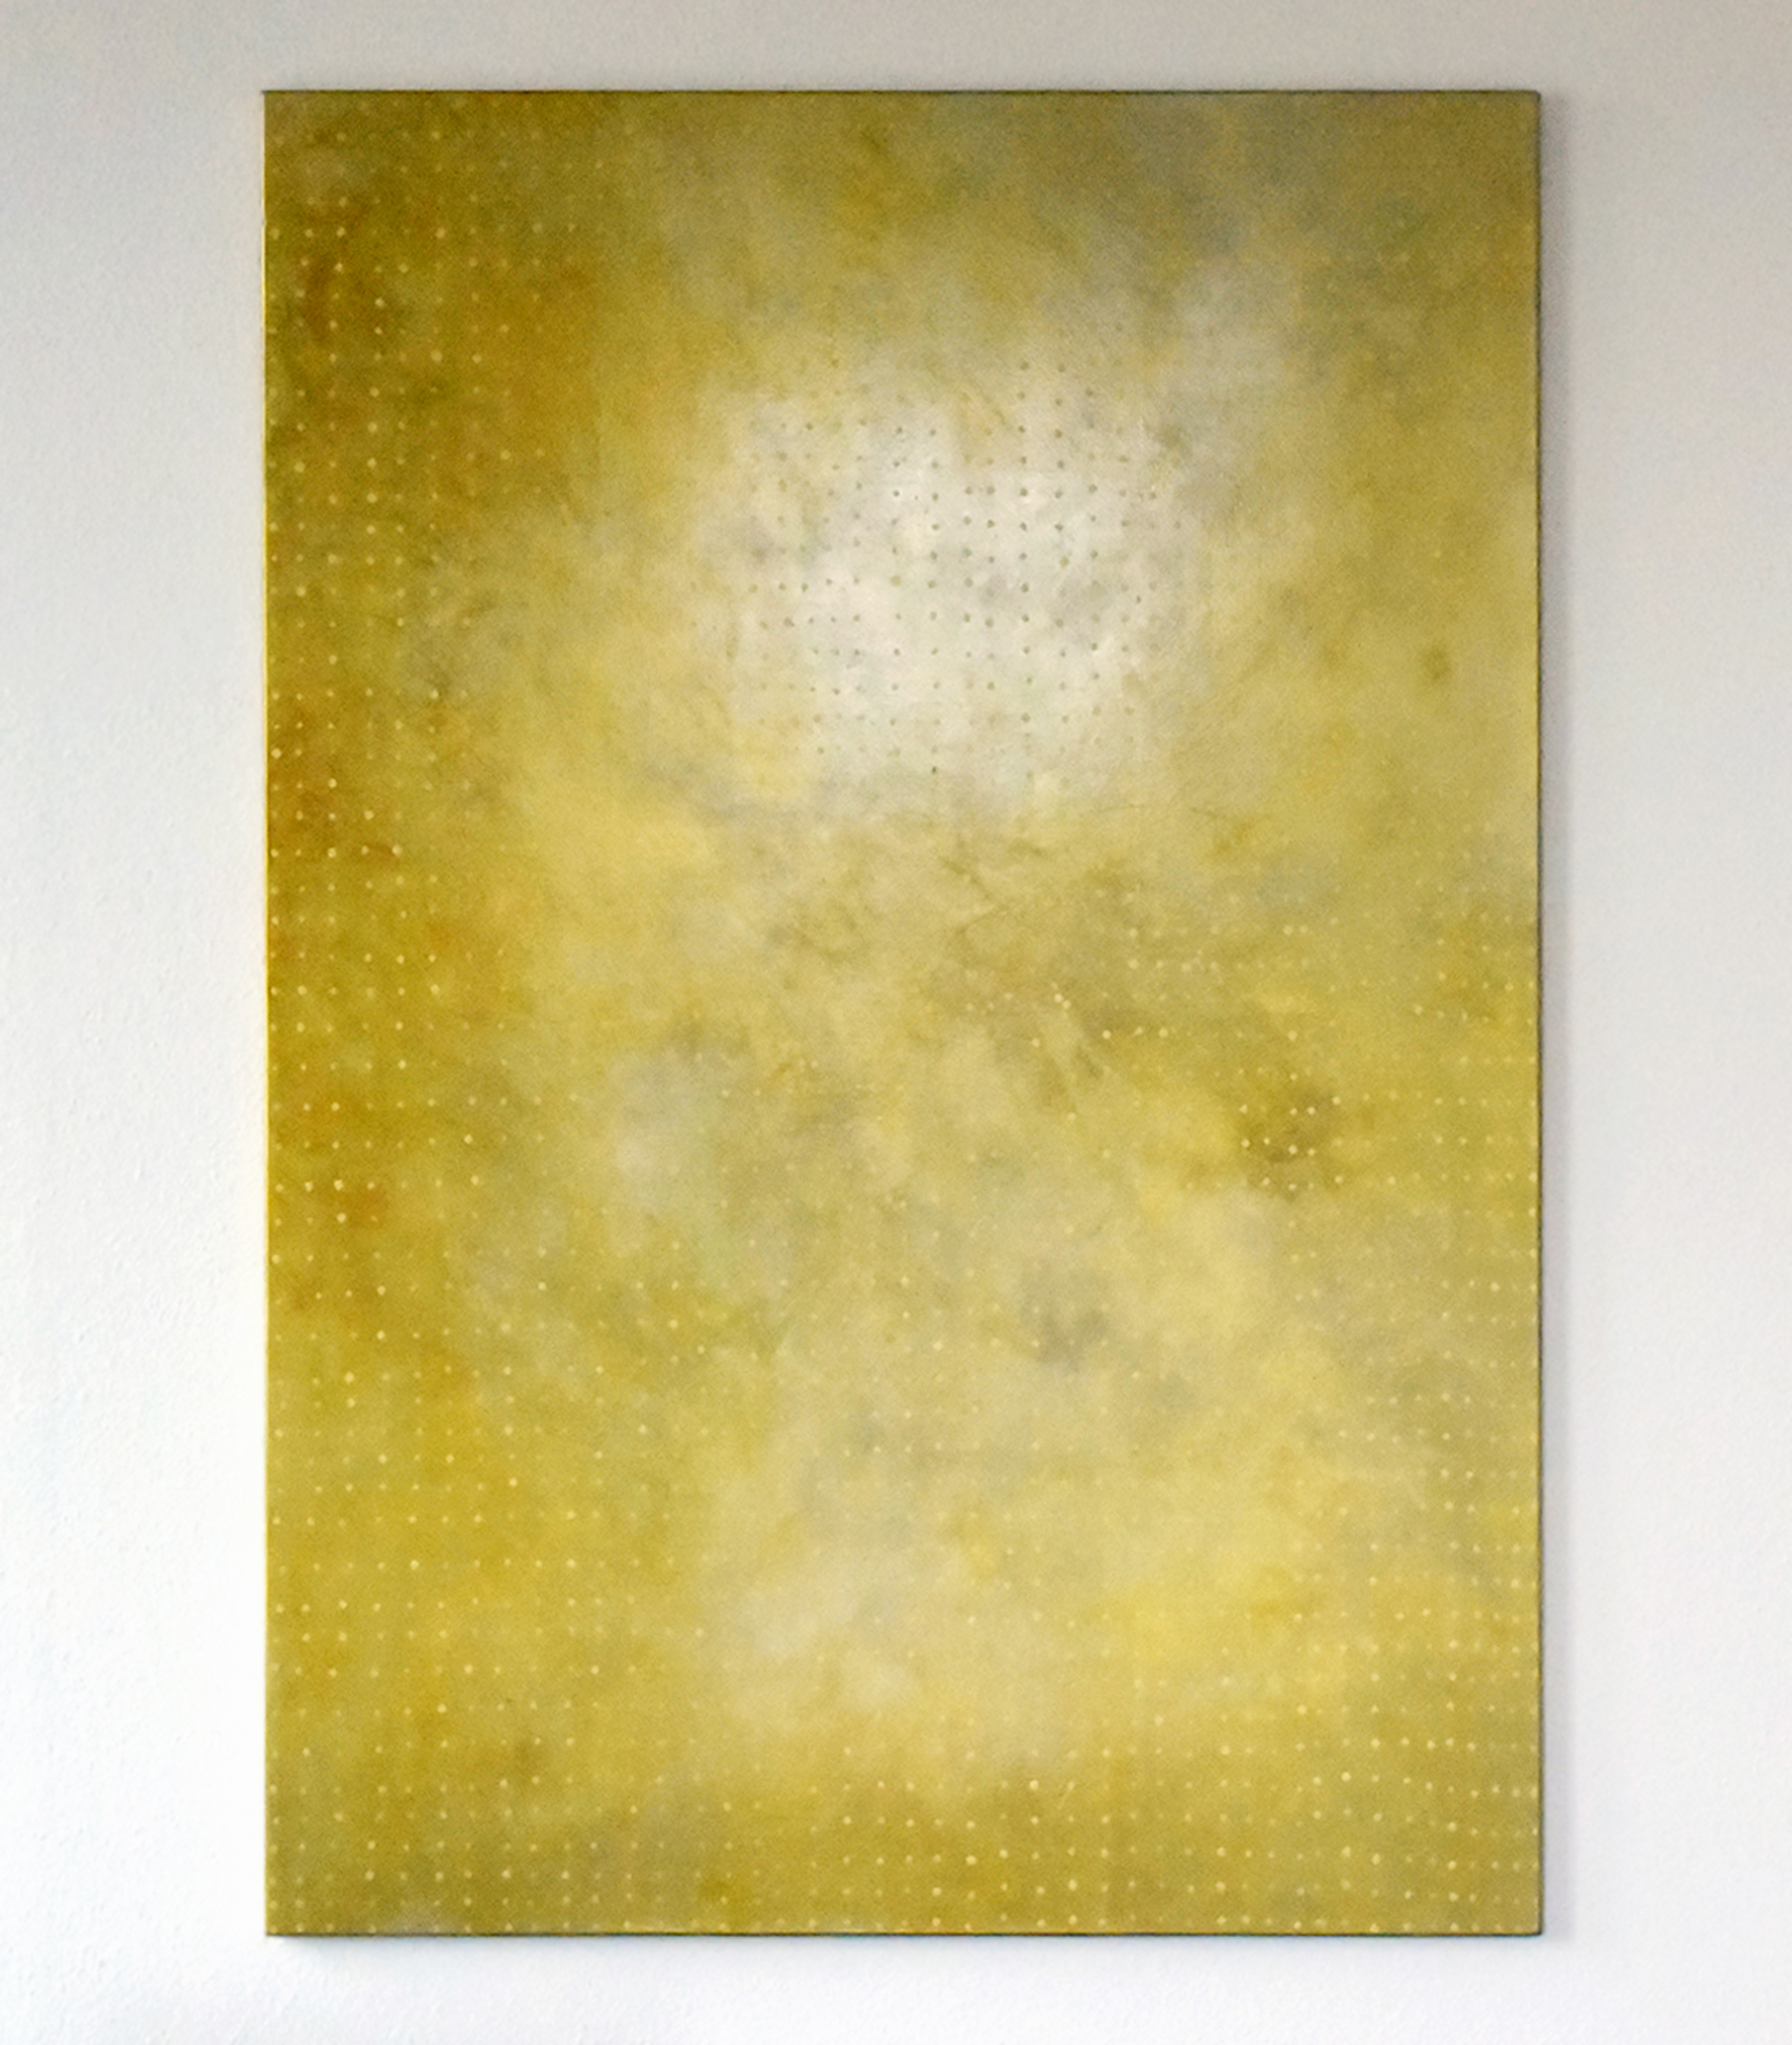 """returning zone – 160 cm x 120 cm, Pigmente auf Leinwand, 2015"